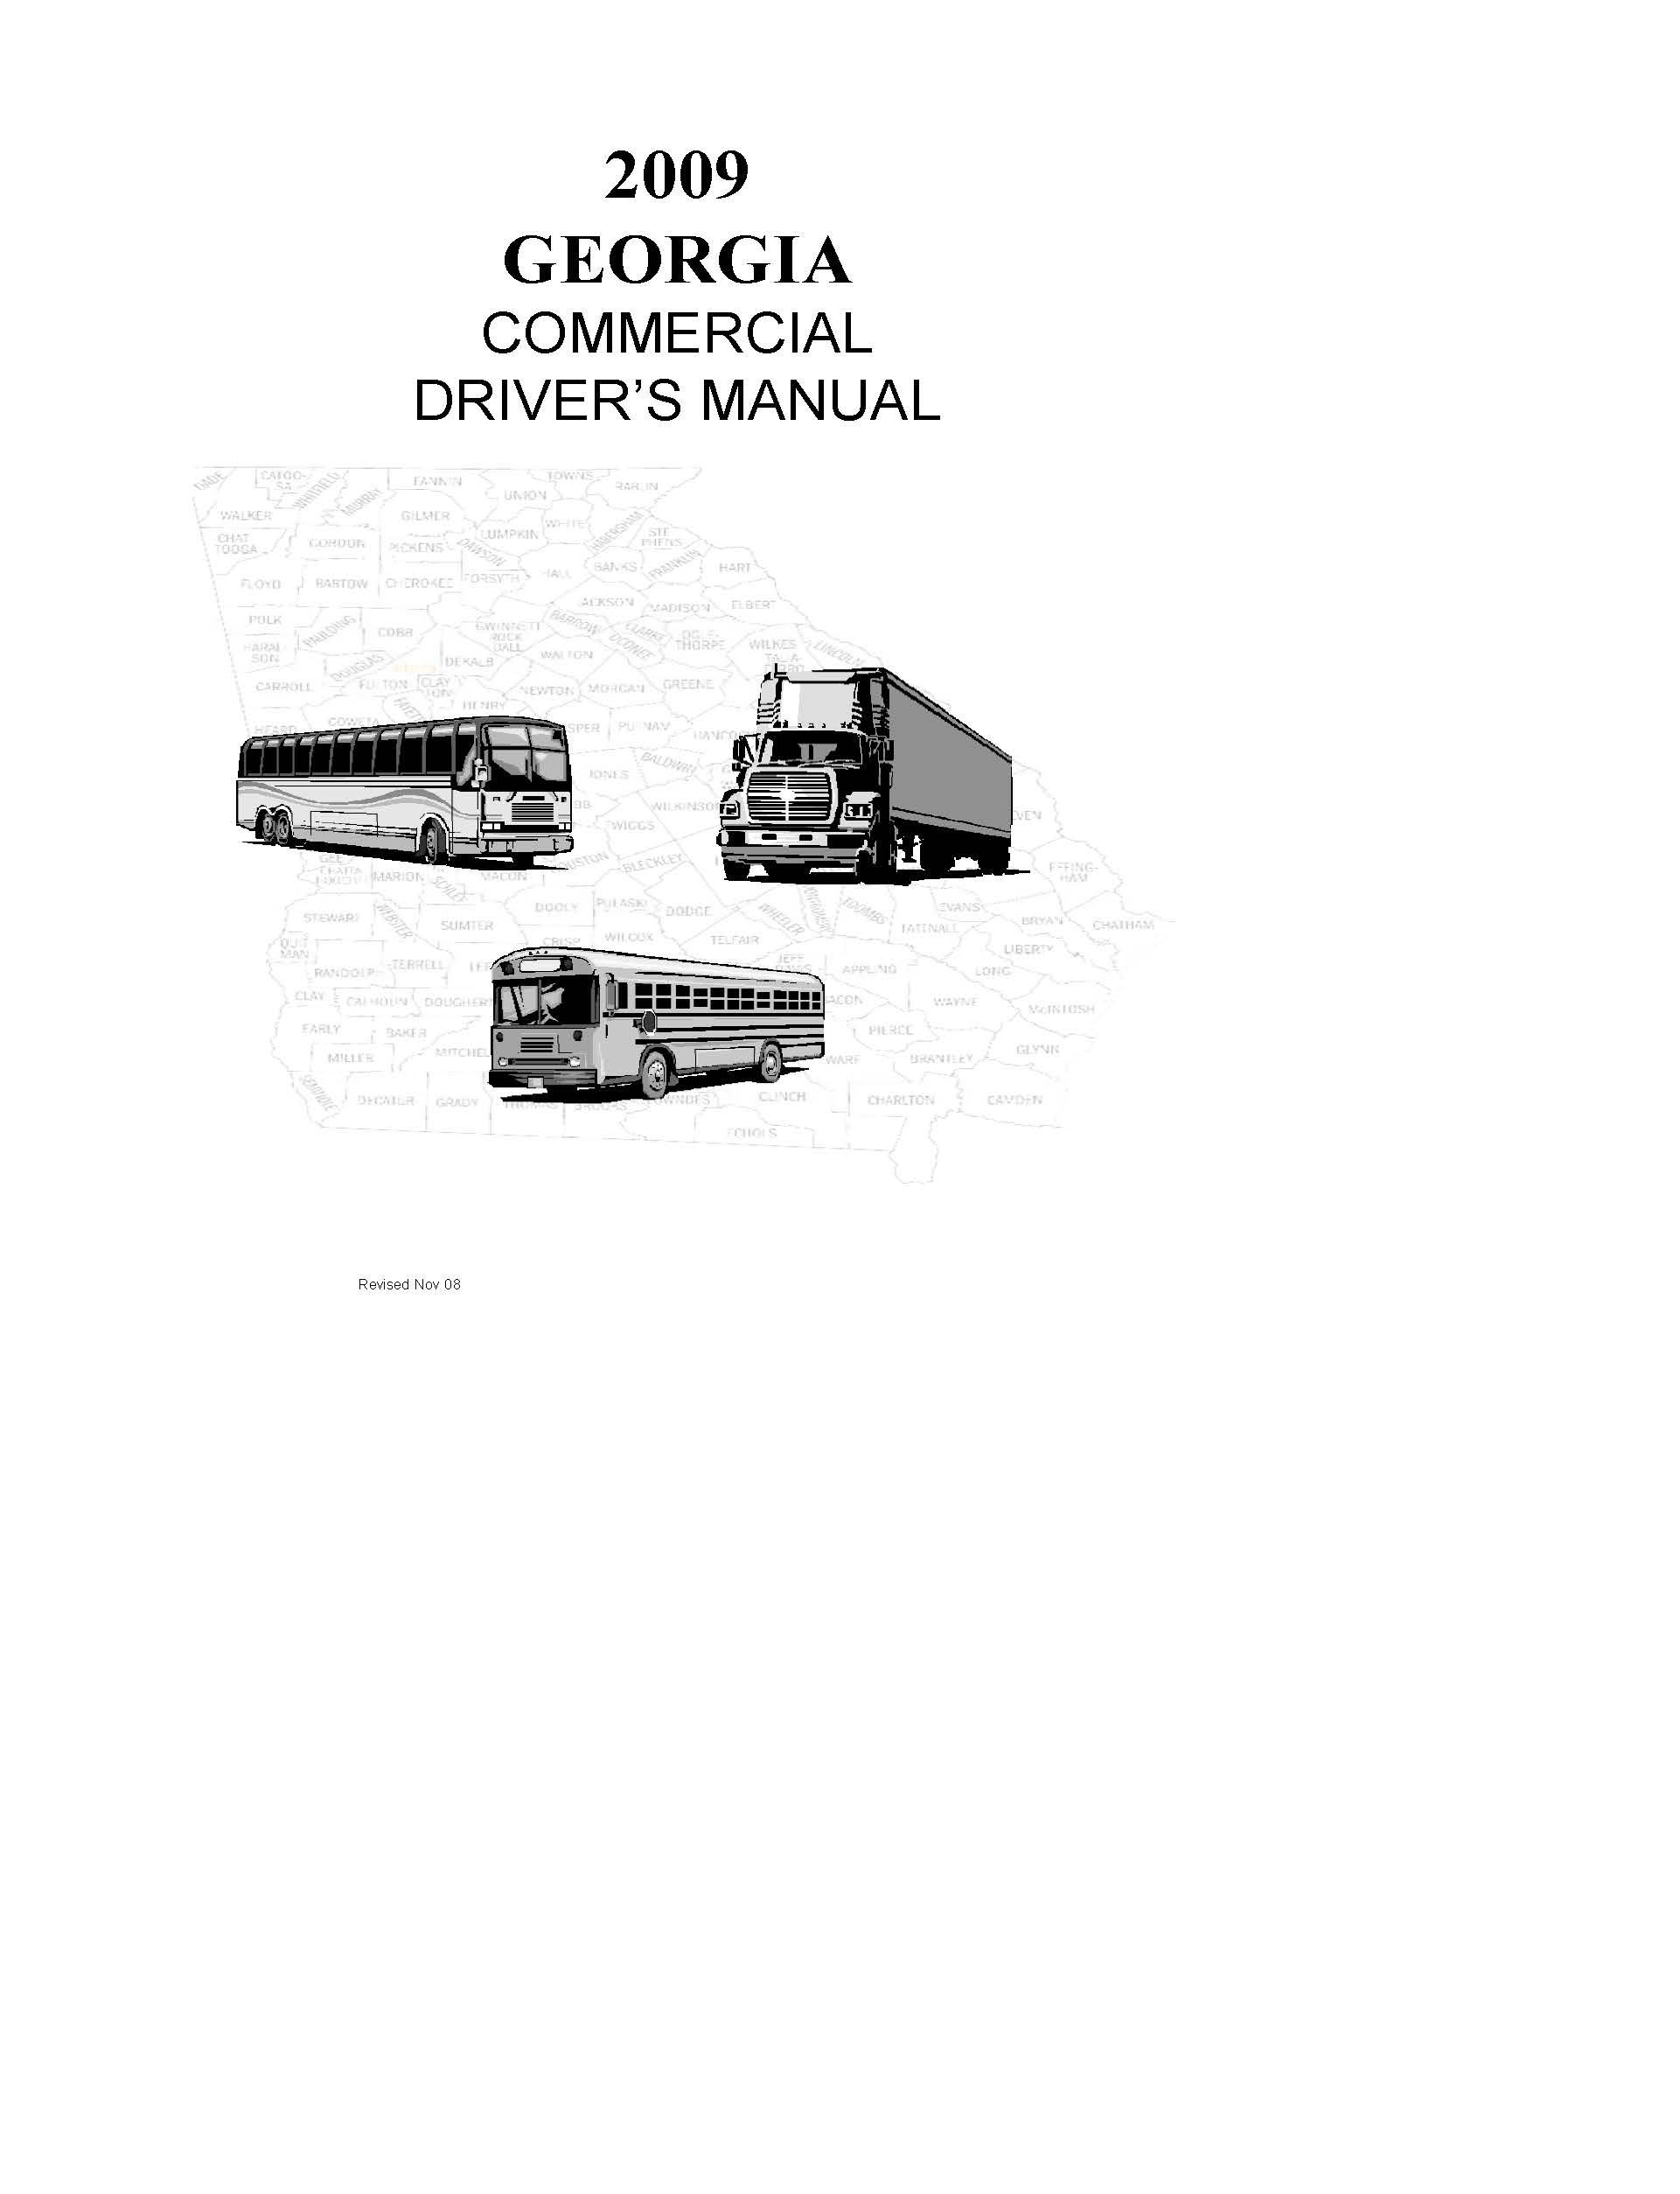 Cardiology malpractice the girards law firm georgia commercial drivers license manual 2009 fandeluxe Images